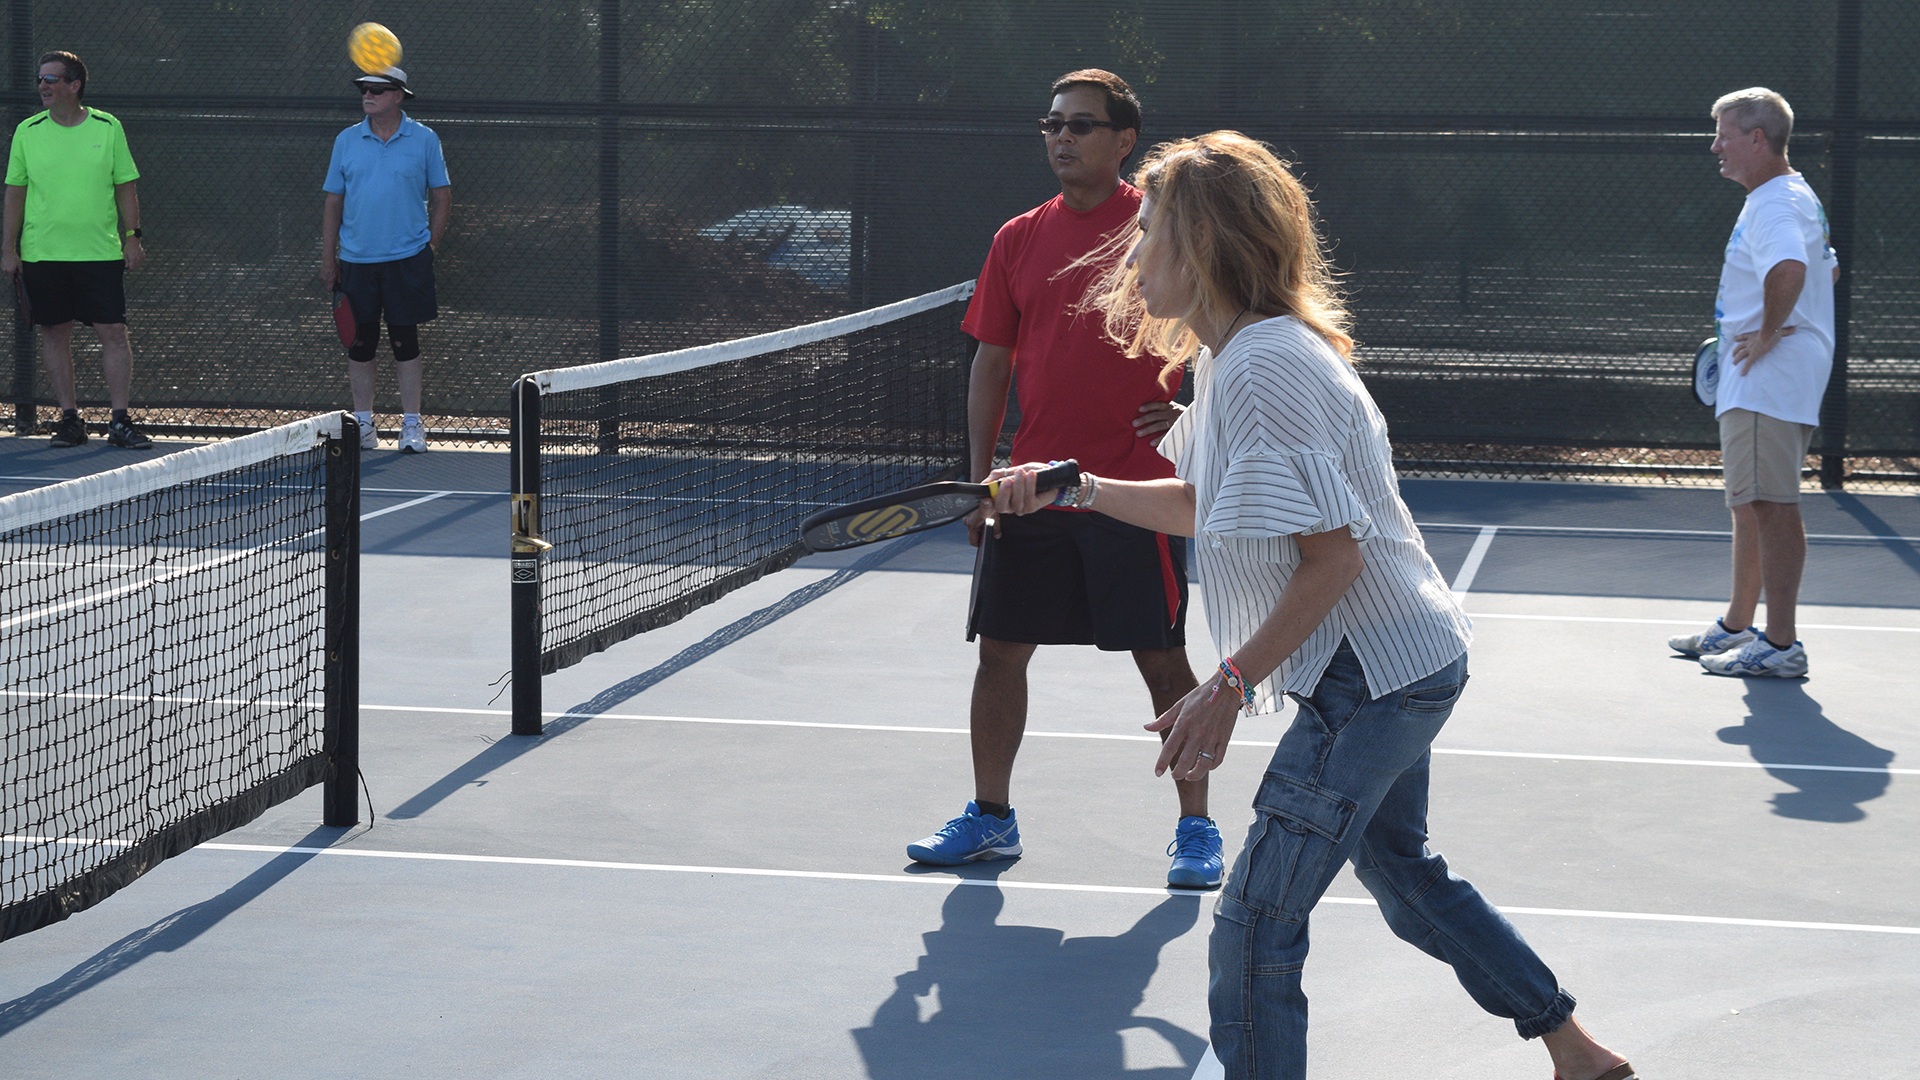 Prudential commercial pickleball